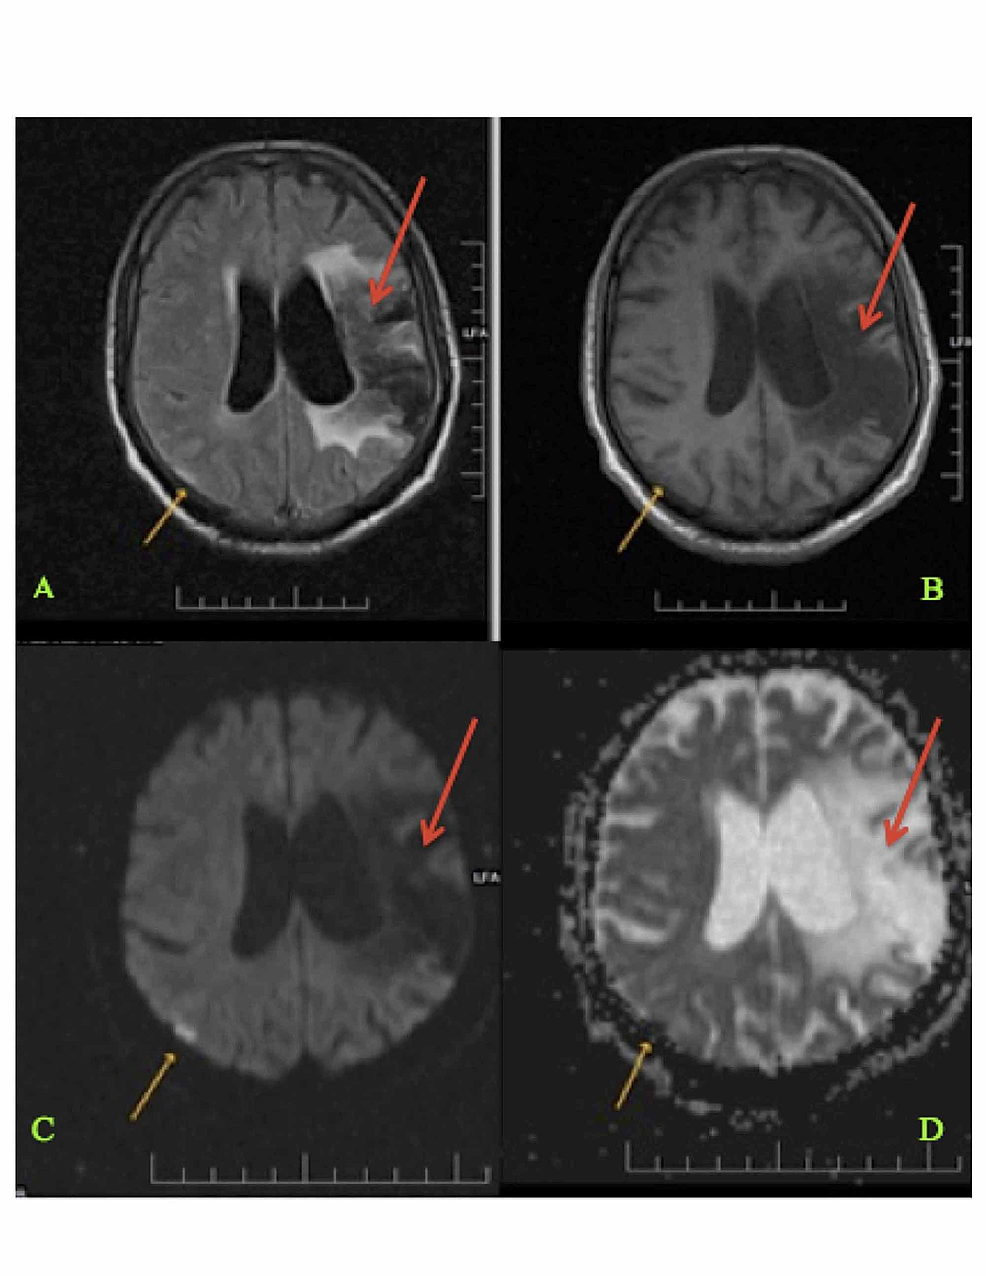 Magnetic-Resonance-Imaging-(MRI)-of-the-Brain-Showing-Current-and-Previous-Infarction-Sites-(Panels-A-D)